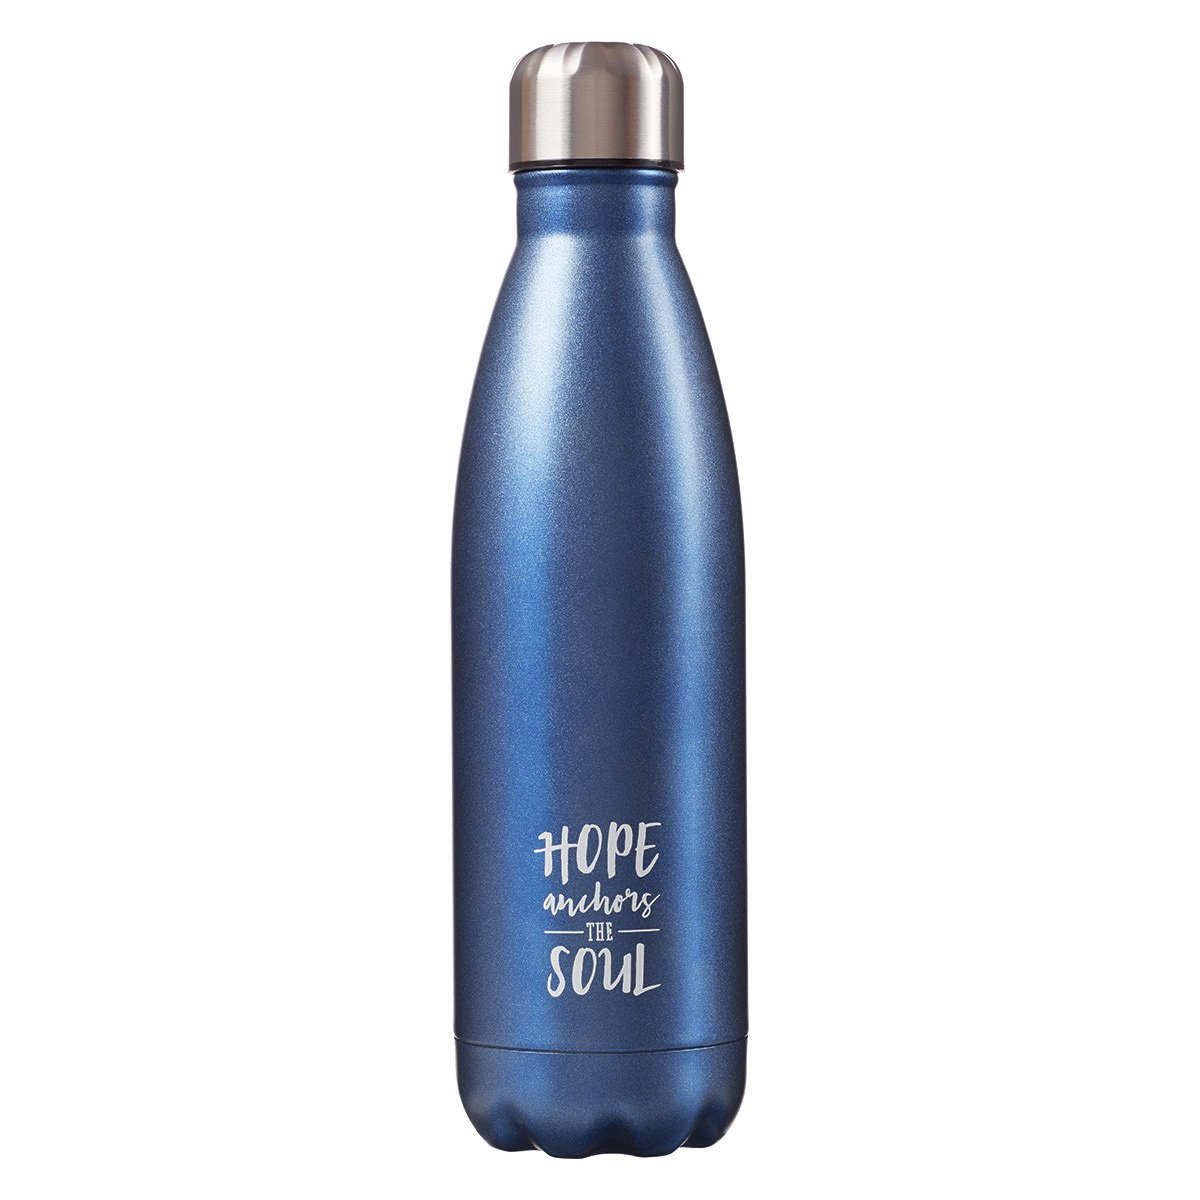 Inspirational Stainless Steel Vacuum Insulated 17 Oz. Hot & Cold Beverage Bottle - Hebrews 6:19 by Christian Art Gifts